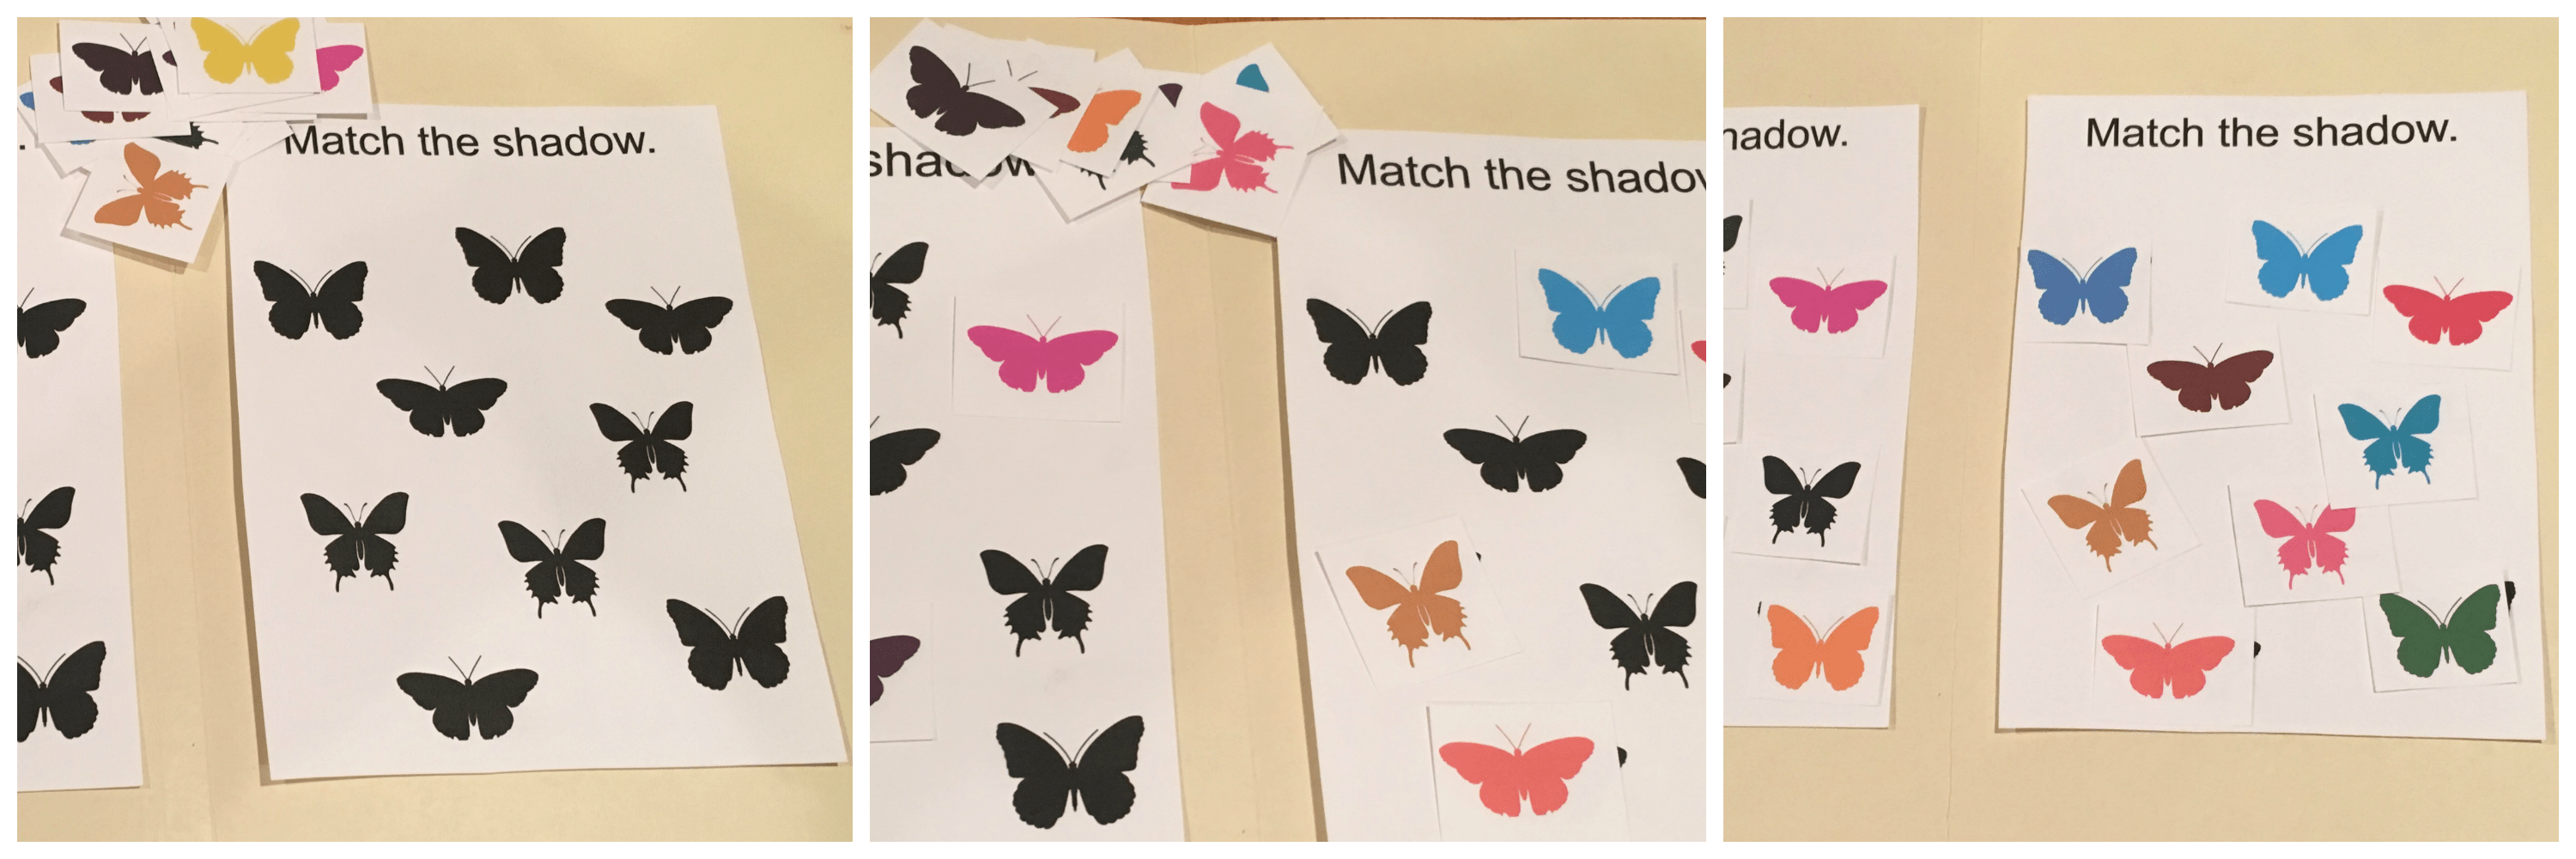 These printable butterfly file folder games are fantastic for keeping the kids busy and engaged while learning! Download the printable and simple cut and paste to a file folder!